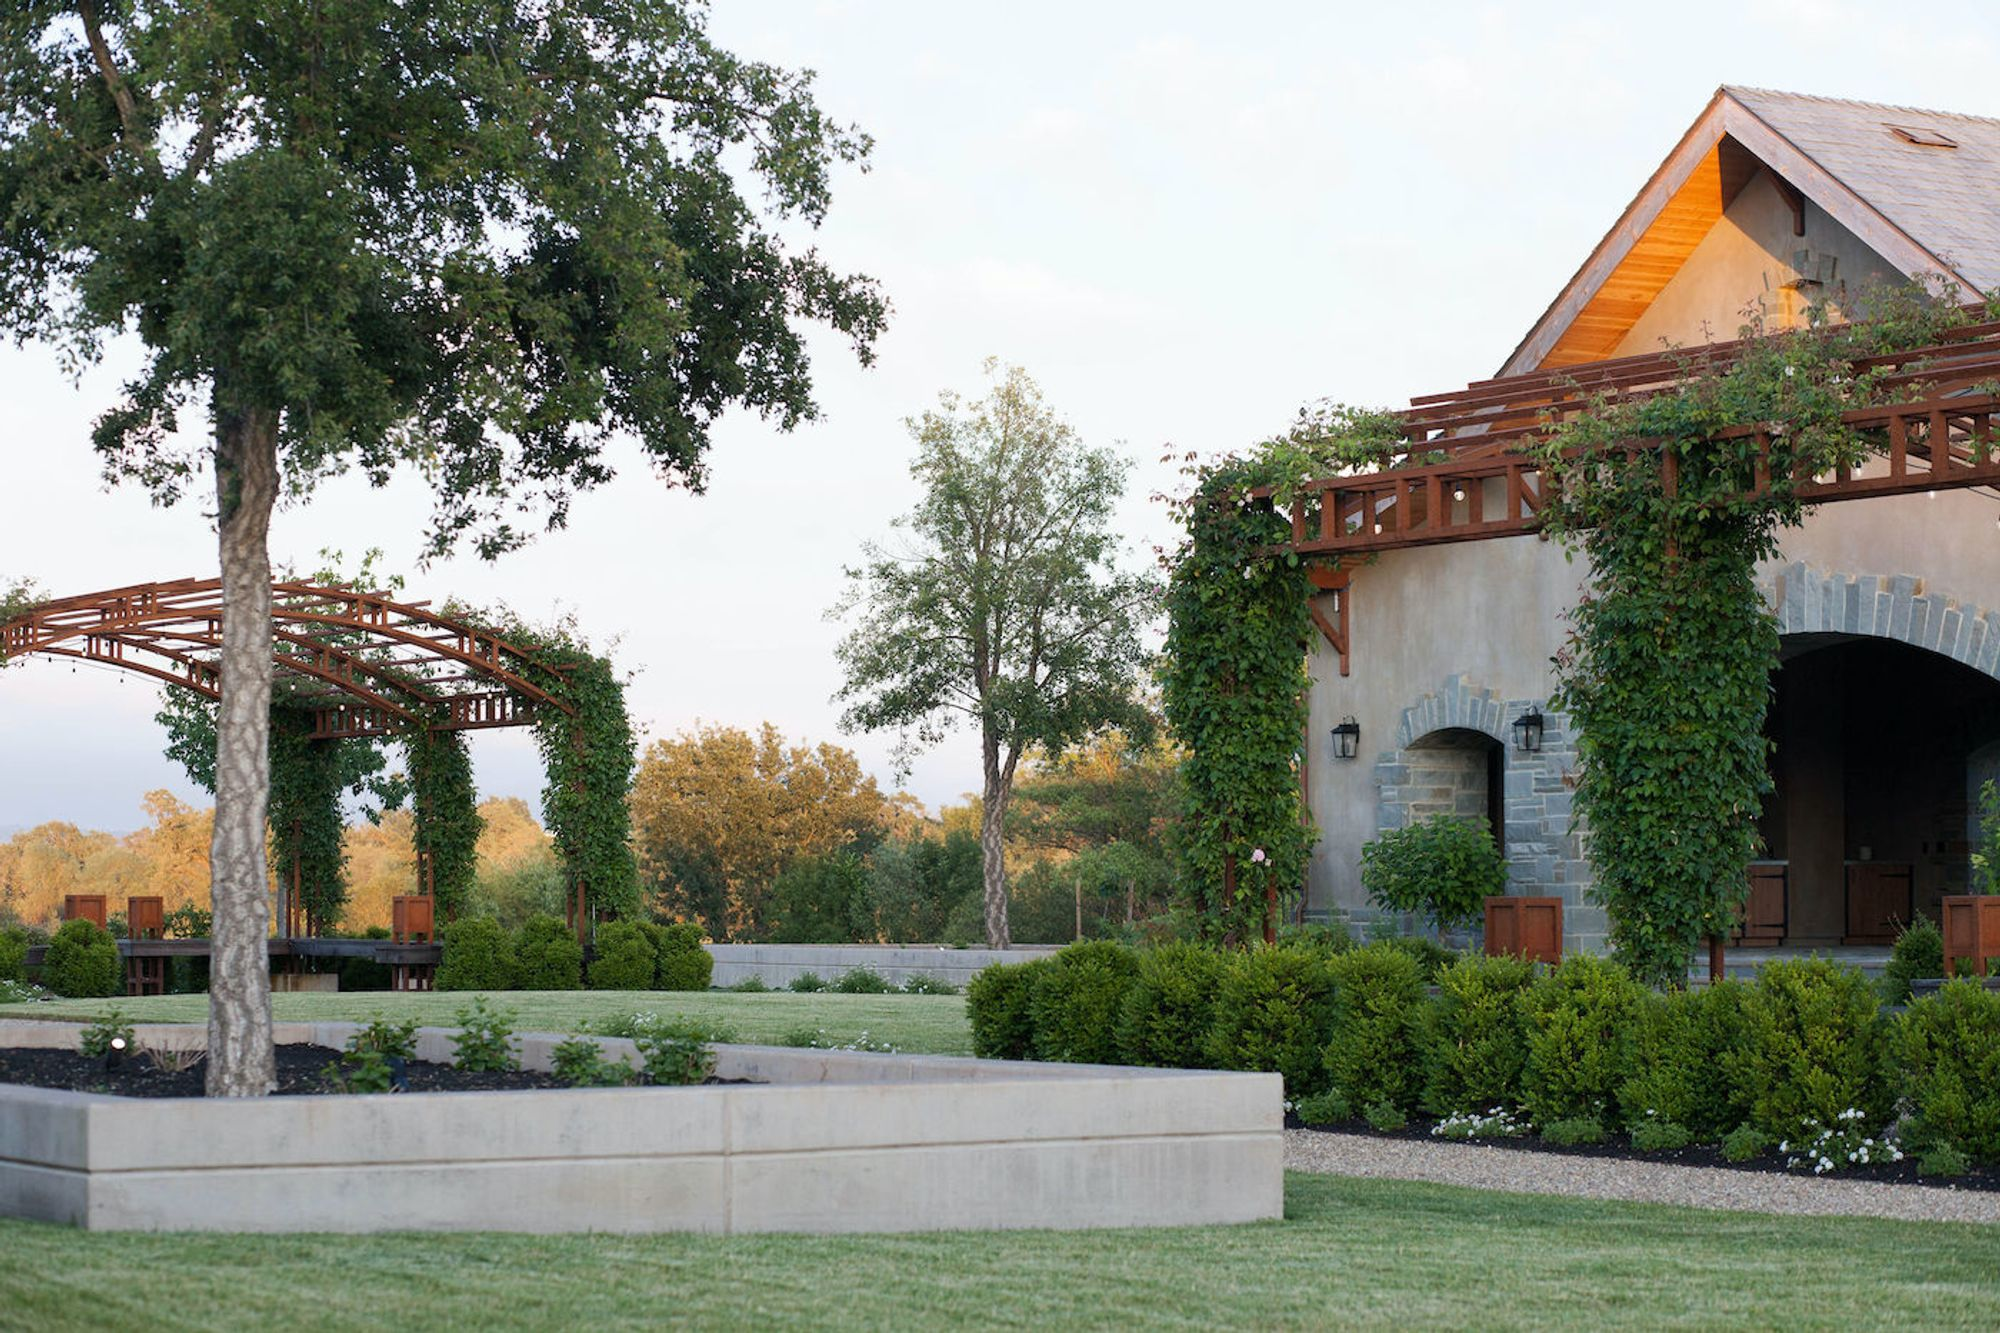 Sustainable wines, summery food pairings + alfresco yoga are on offer at Windsor's scenic new Bricoleur Vineyards